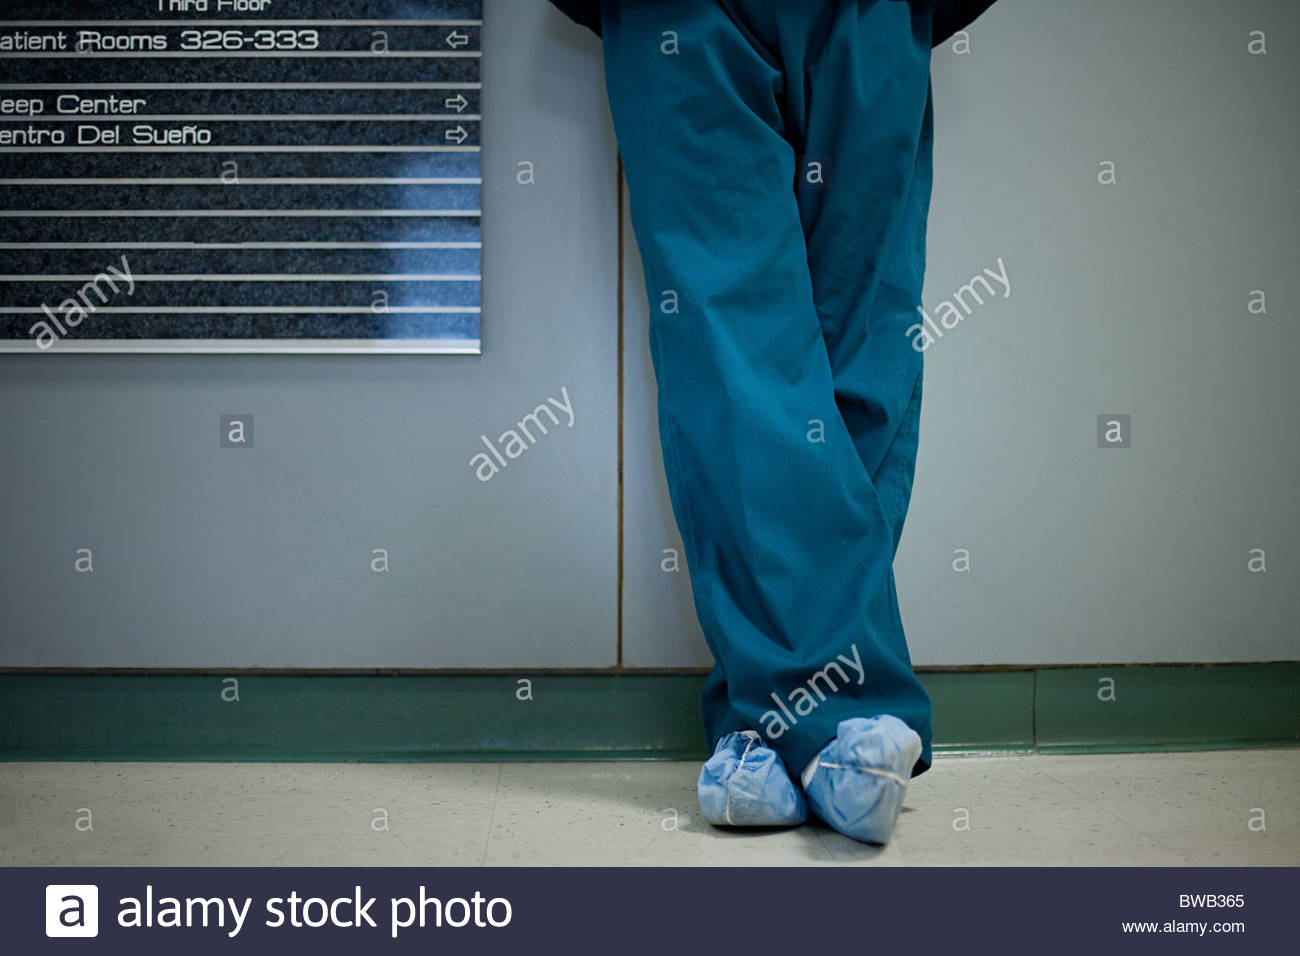 Hospital surgeon wearing shoe protectors, low section - Stock Image